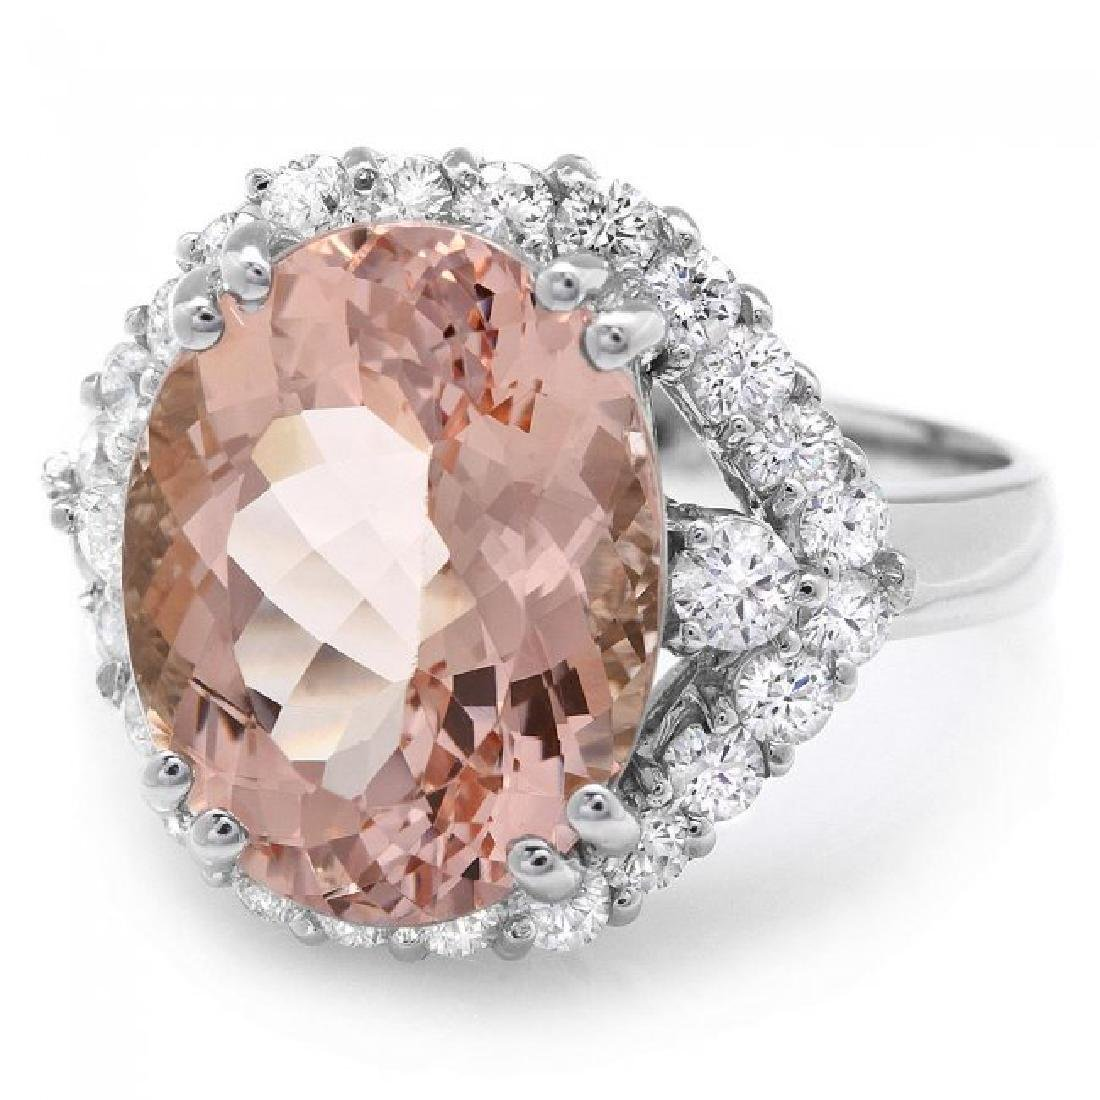 14k Gold 6.00ct Morganite 1.00ct Diamond Ring - 3